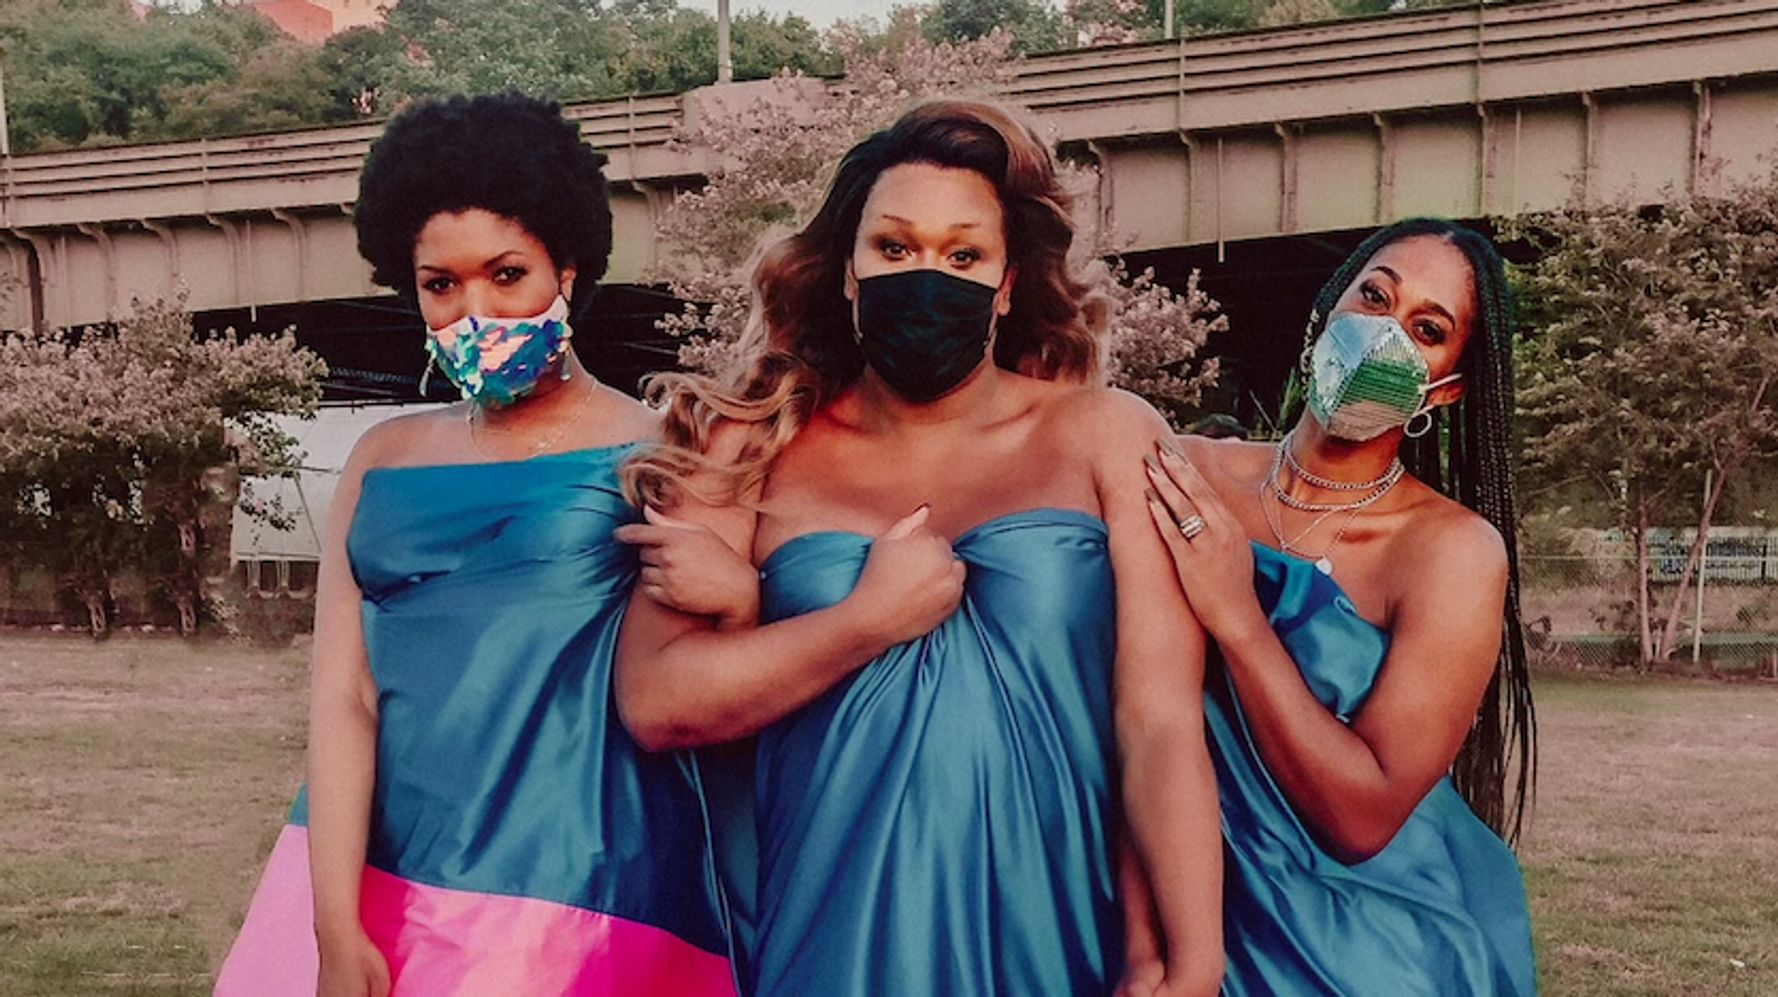 Black Trans Artists Honor Victims Of Transphobic Violence In Powerful Music Video